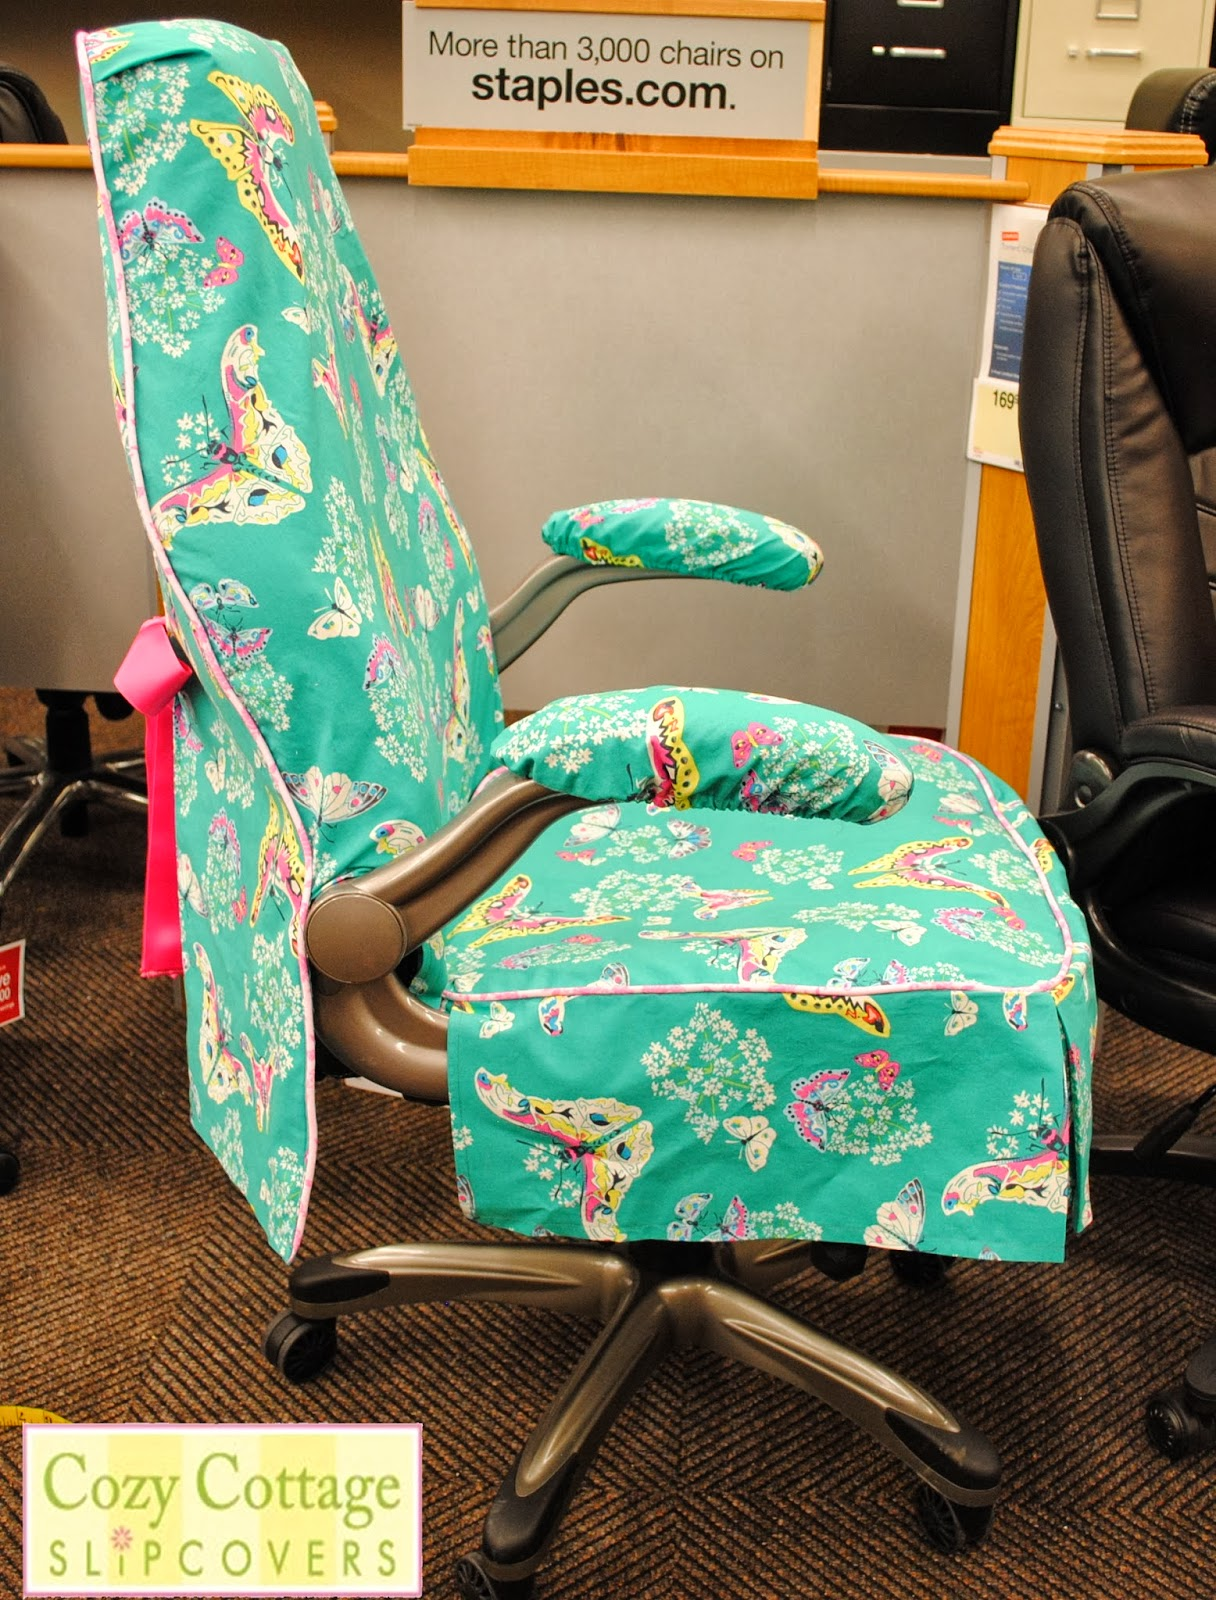 Cozy cottage slipcovers new office chair slipcovers - This Customer Also Chose To Have Matching Arm Covers Made Posted By Cozy Cottage Slipcovers